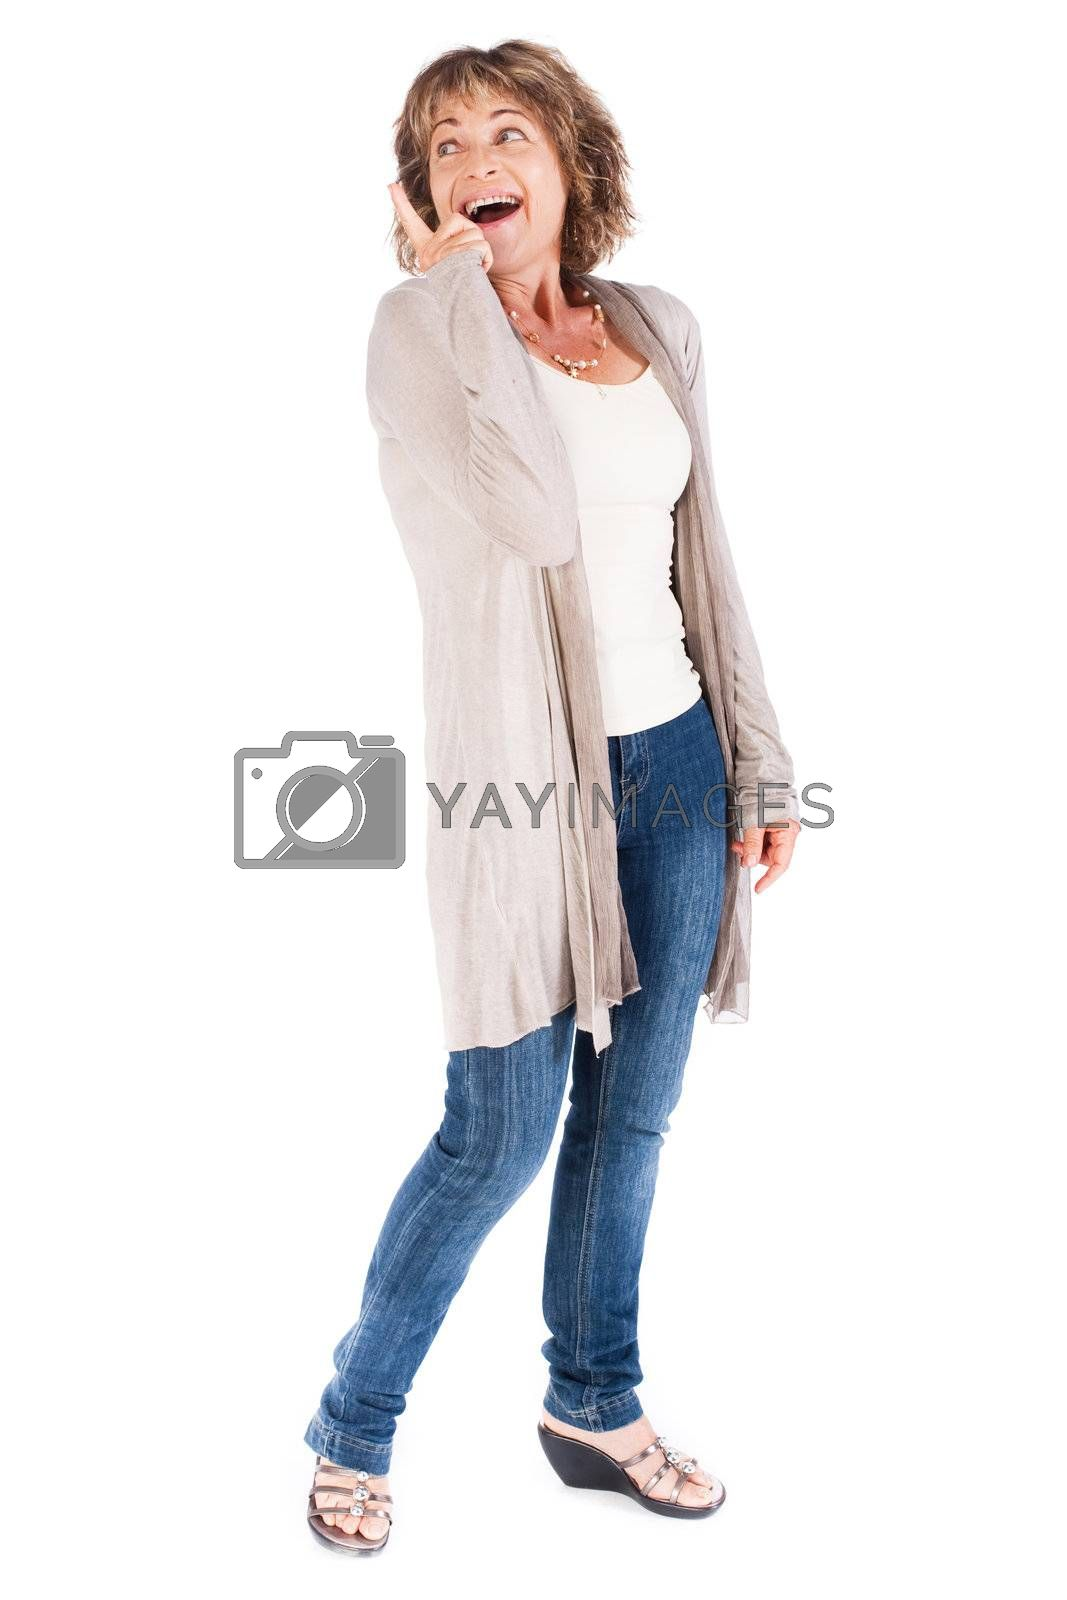 Senior woman pointing upwards and looking away over white background.